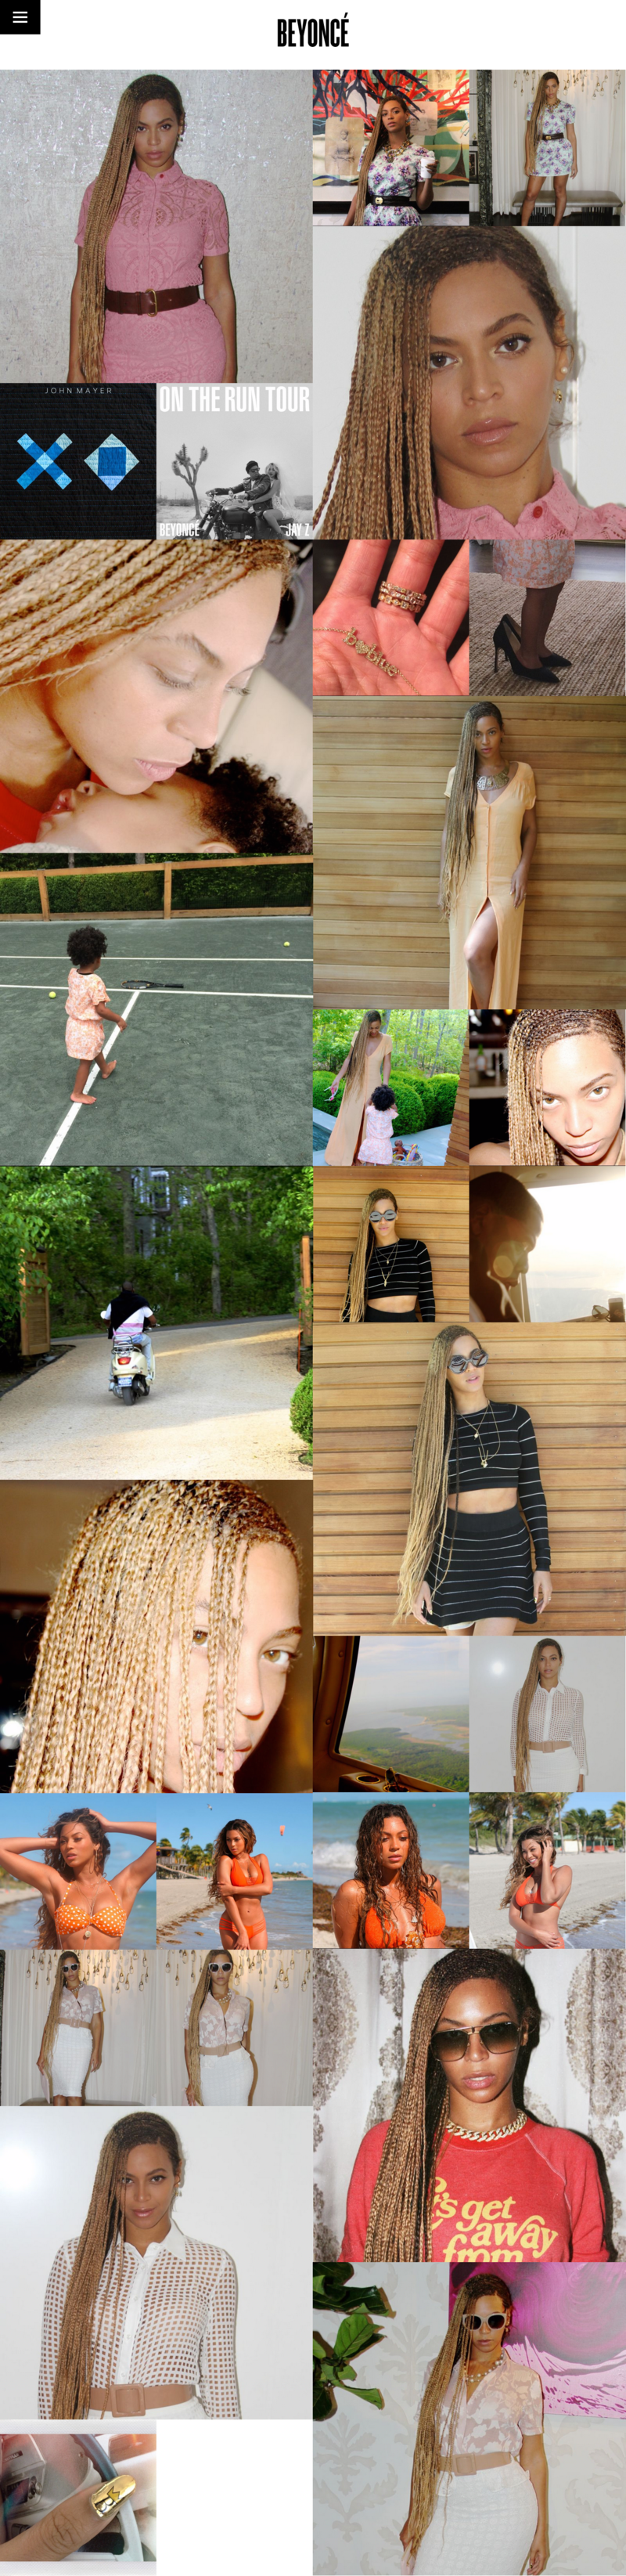 Homepage of Beyonce - home